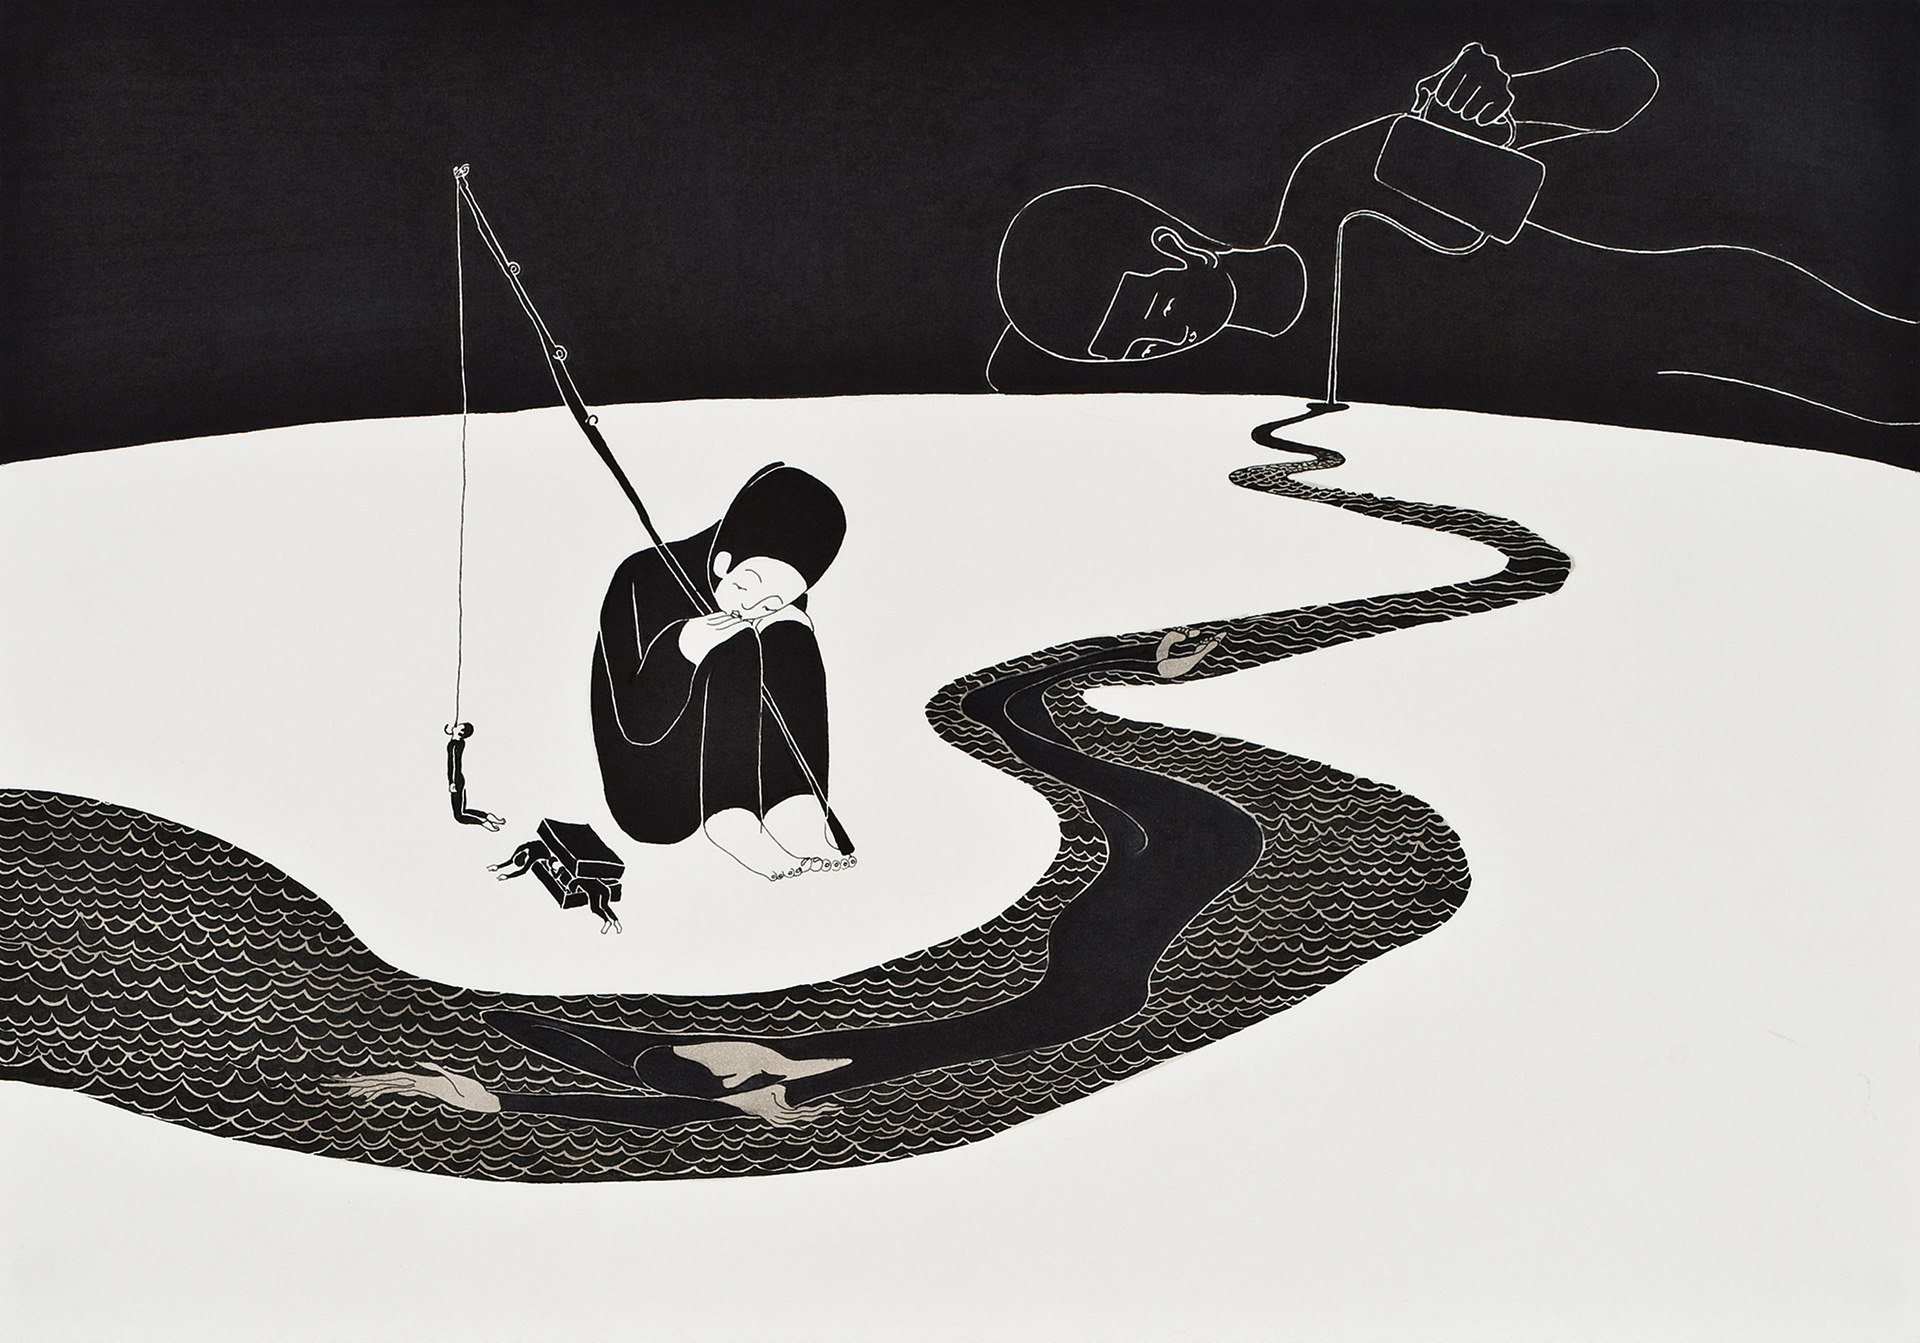 흐르게 둔다   /   Let you flow   Op. 0023P - 42 x 29.7 cm, 종이에 펜, 마커 / Pigment liner and marker on paper, 2009